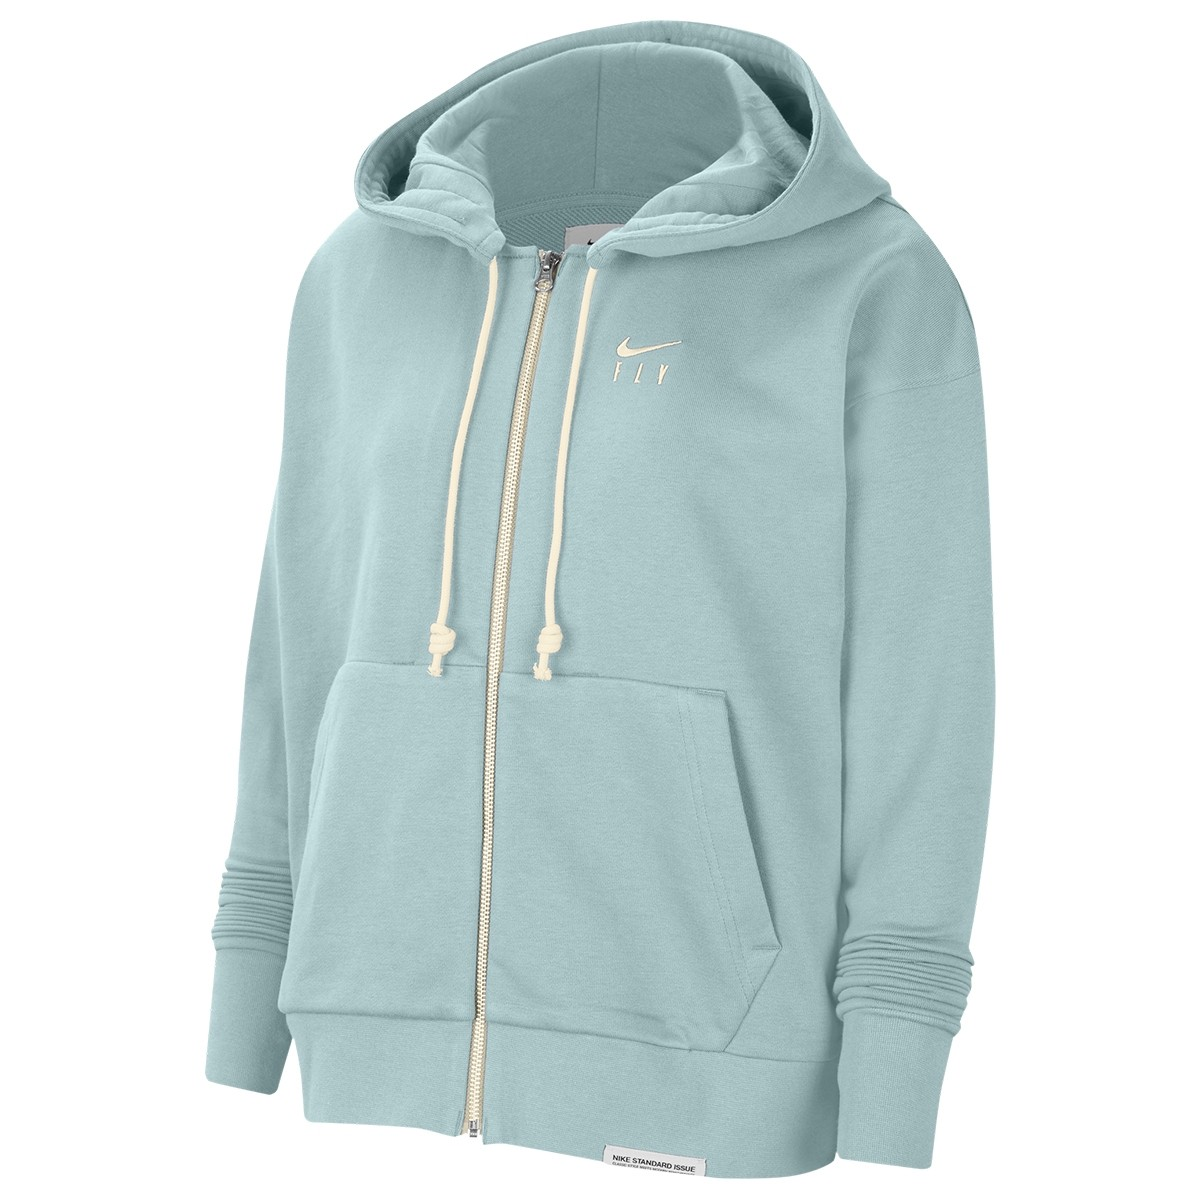 Sudadera Nike Swoosh Fly Wmns Standard Issue 'Teal'